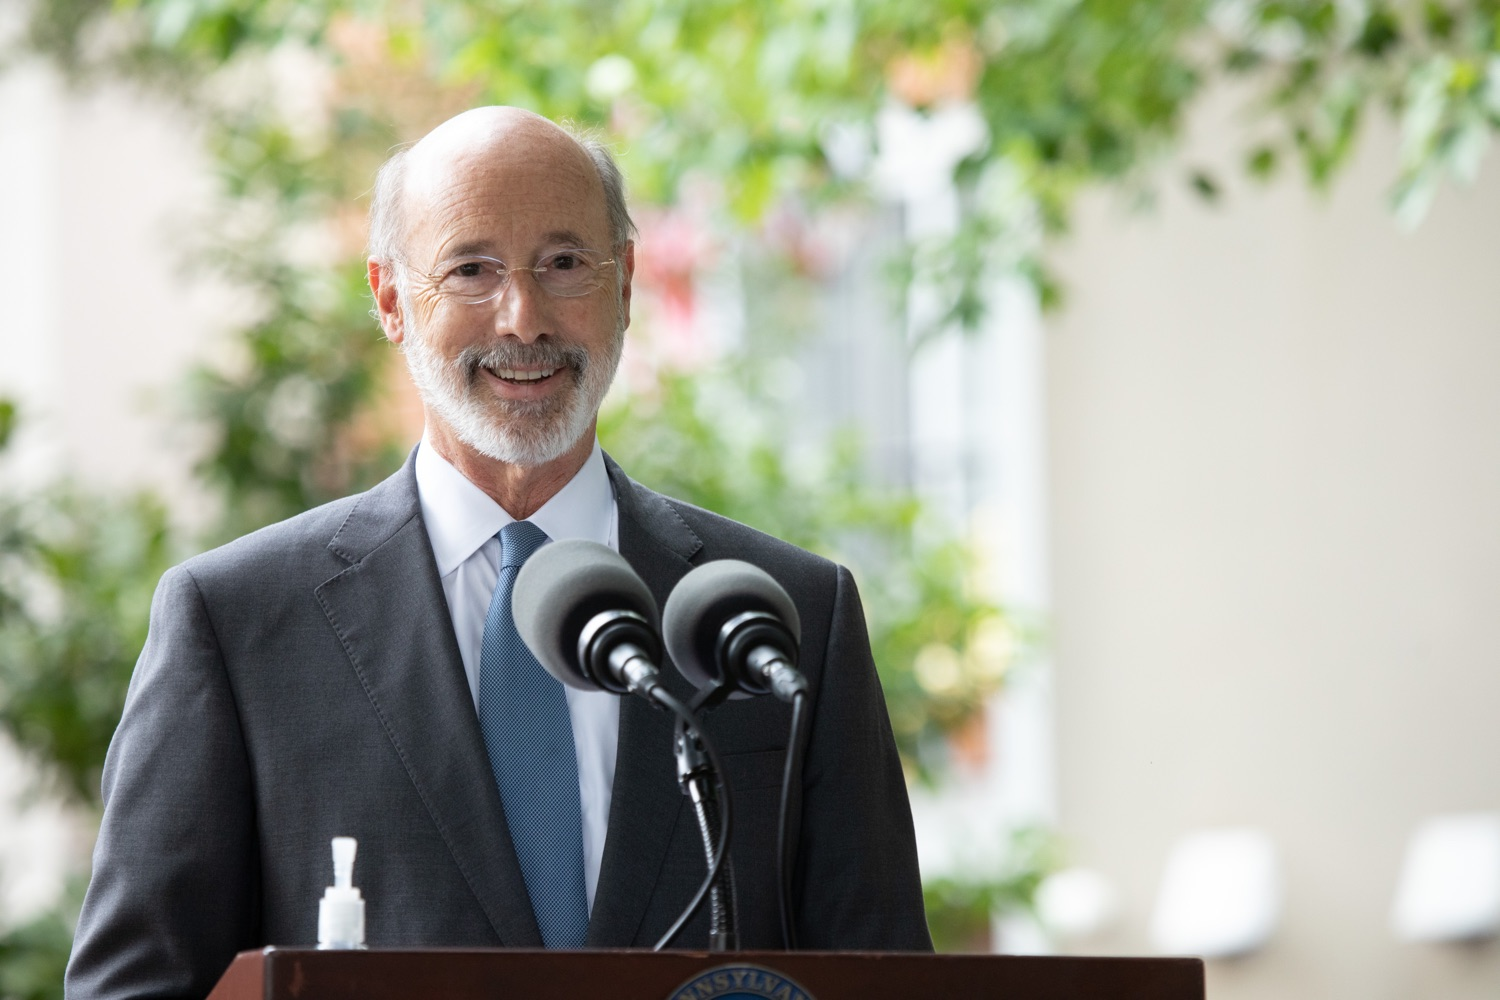 "<a href=""https://filesource.wostreaming.net/commonwealthofpa/photo/18178_GOV_Lancaster_Health_dz__01.jpg"" target=""_blank"">⇣ Download Photo<br></a>Pennsylvania Governor Tom Wolf speaking at the event.  Governor Tom Wolf today visited Lancaster Health Center, a federally qualified health center, to thank staff for their work to ensure the communitys most vulnerable receive care during COVID-19 and year-round.  Harrisburg, PA  July 24, 2020"